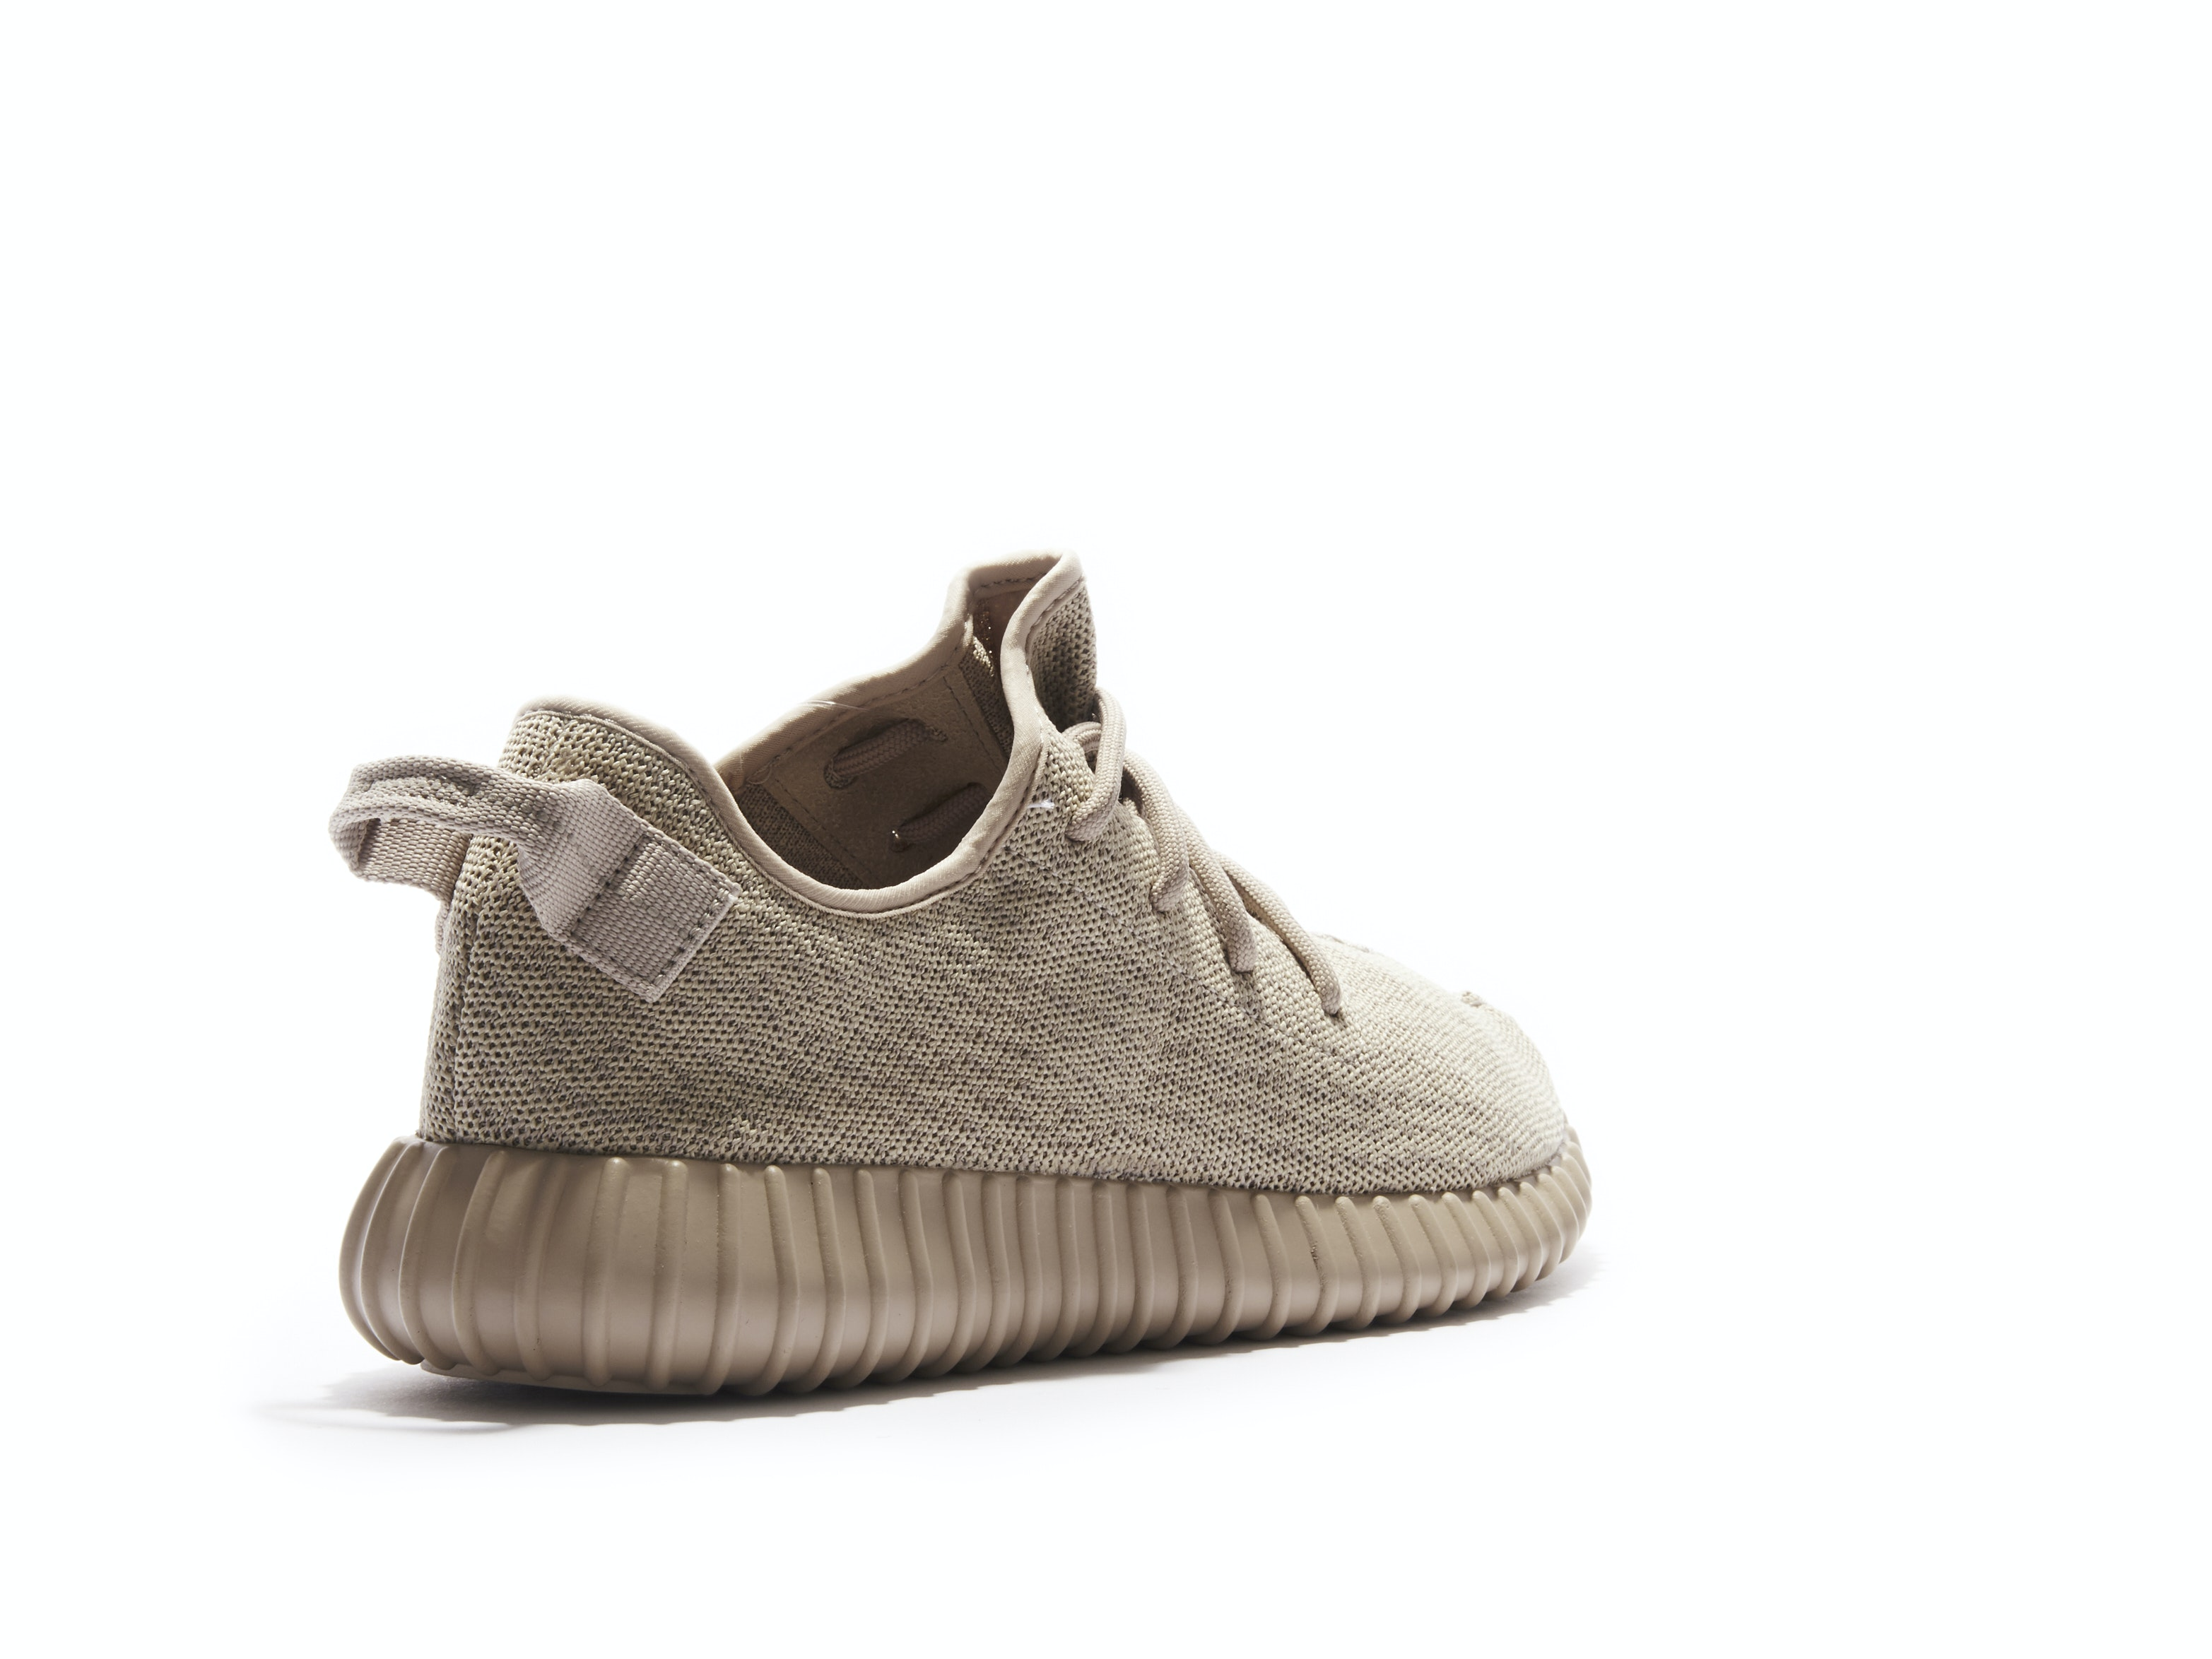 671620d679e Yeezy Boost 350 Oxford Tan. 100% AuthenticAvg Delivery Time  1-2 days.  Adidas   AQ2661